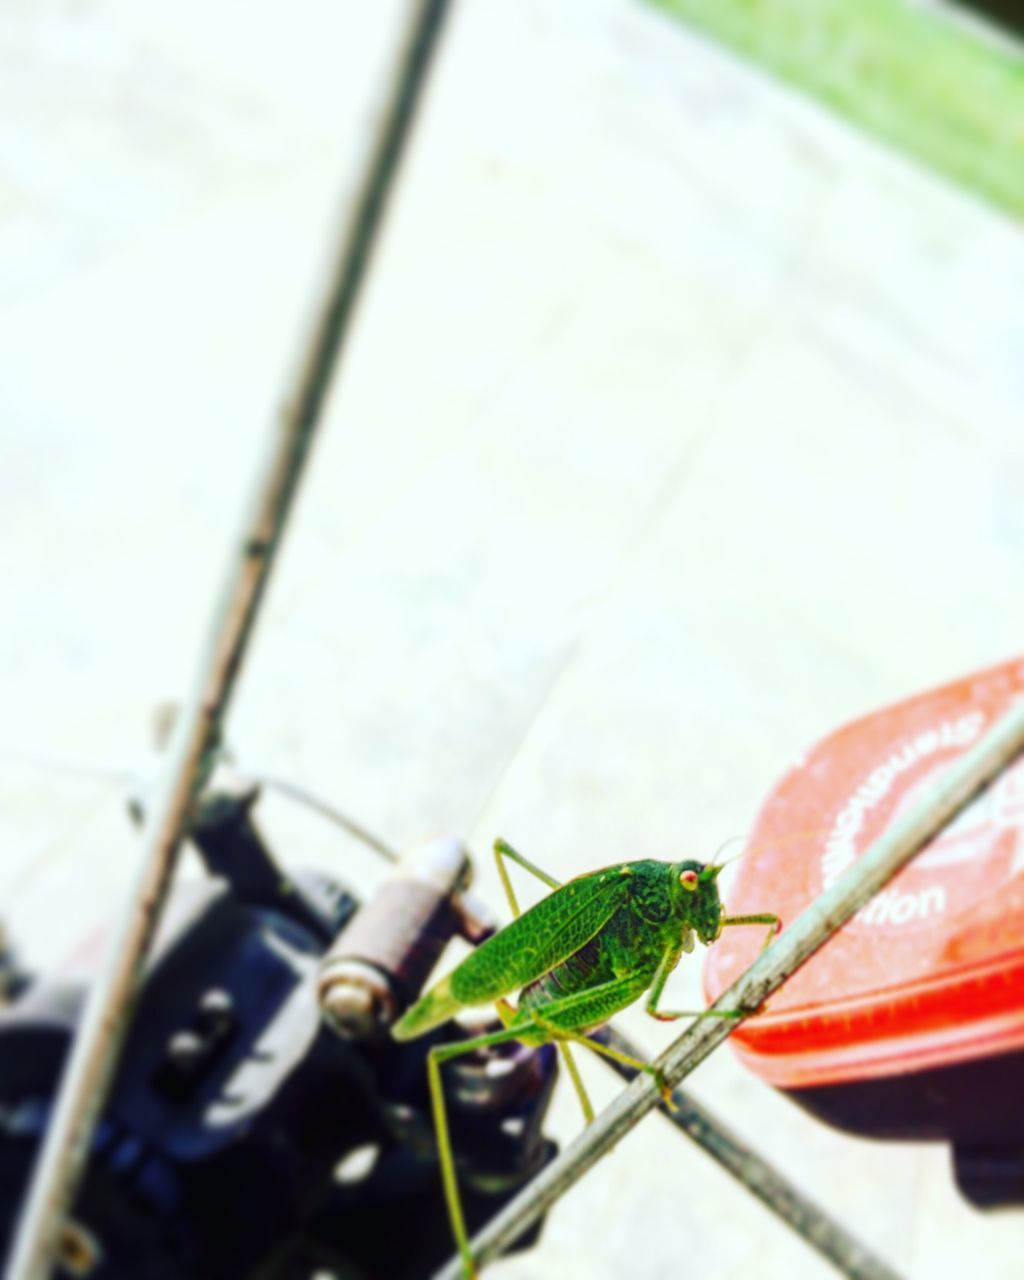 animal themes, one animal, insect, animals in the wild, close-up, no people, green color, animal wildlife, leaf, day, focus on foreground, outdoors, grasshopper, nature